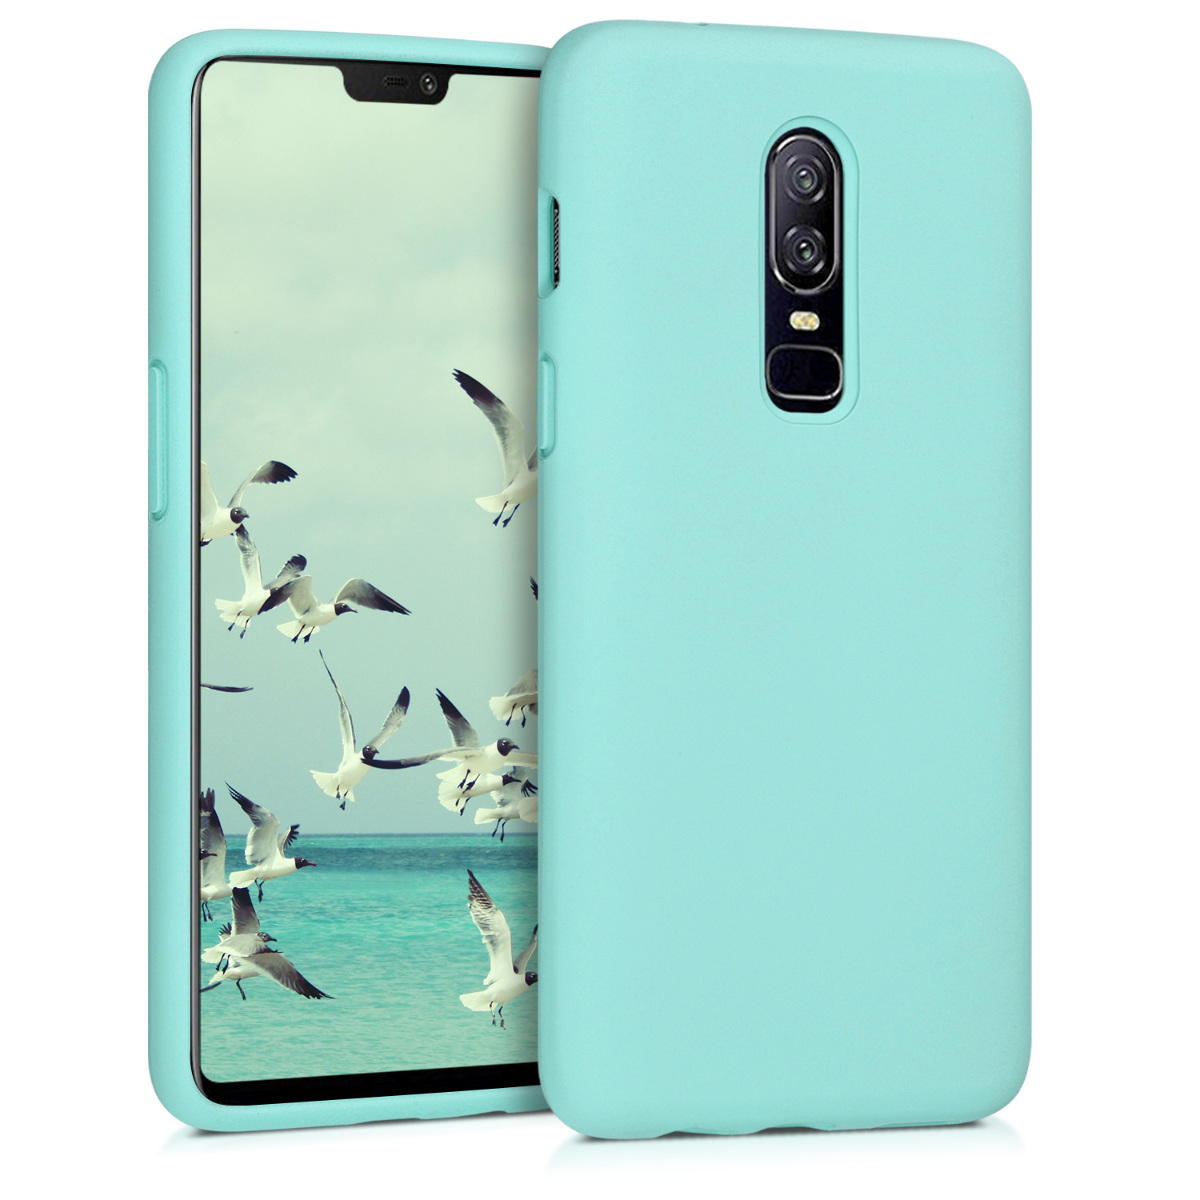 KW TPU Θήκη Σιλικόνης OnePlus 6 - Soft Flexible Rubber Protective Cover - Mint (46122.50)